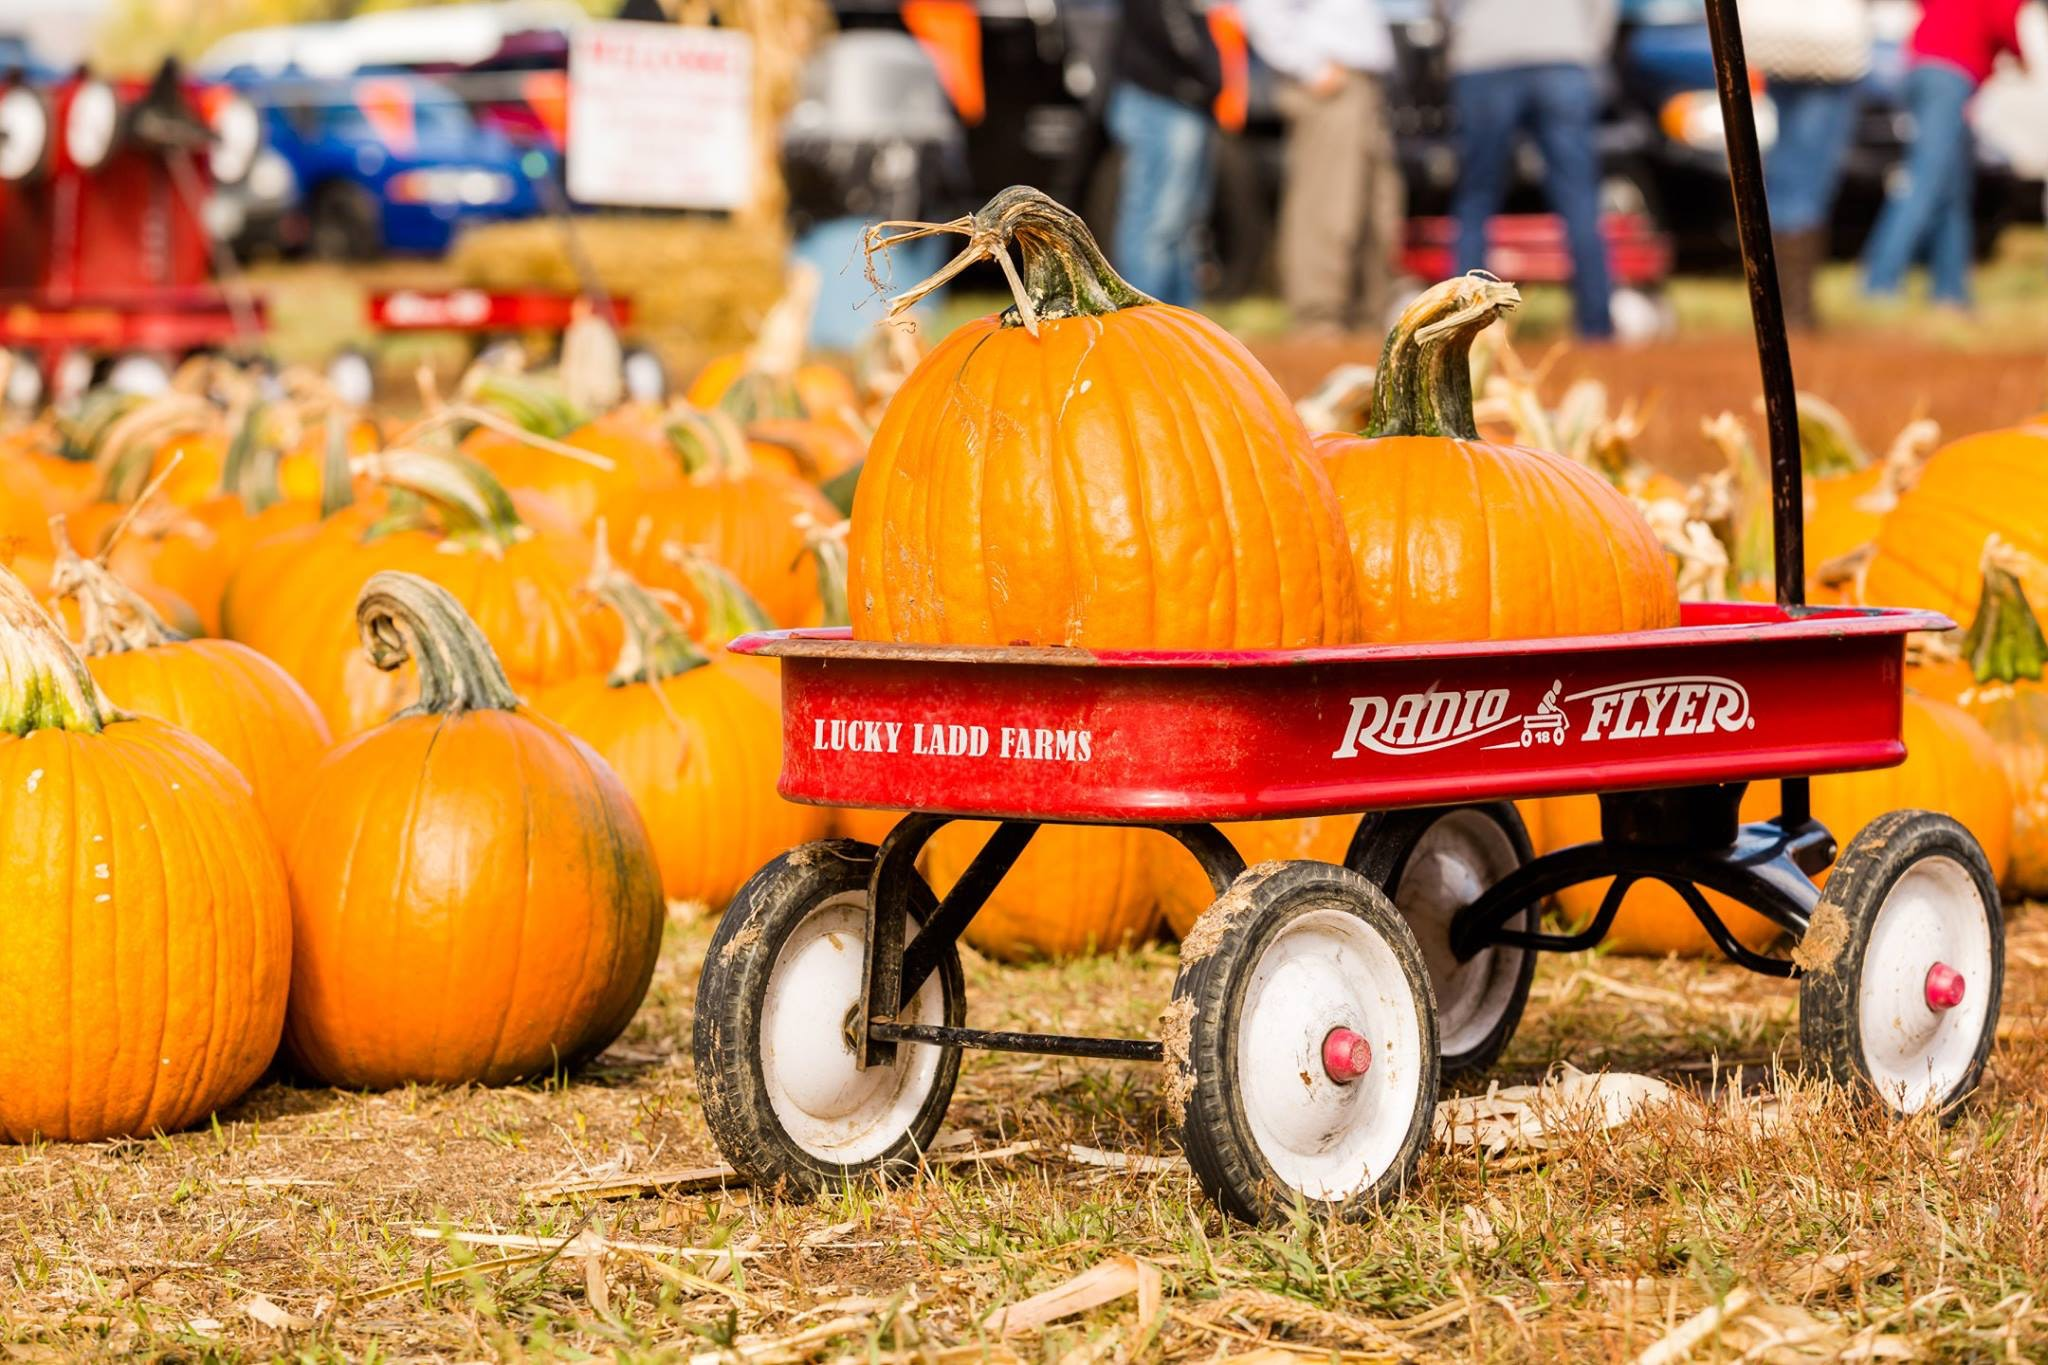 Find your next favorite pumpkin in a town 45 minutes south of Nashville.